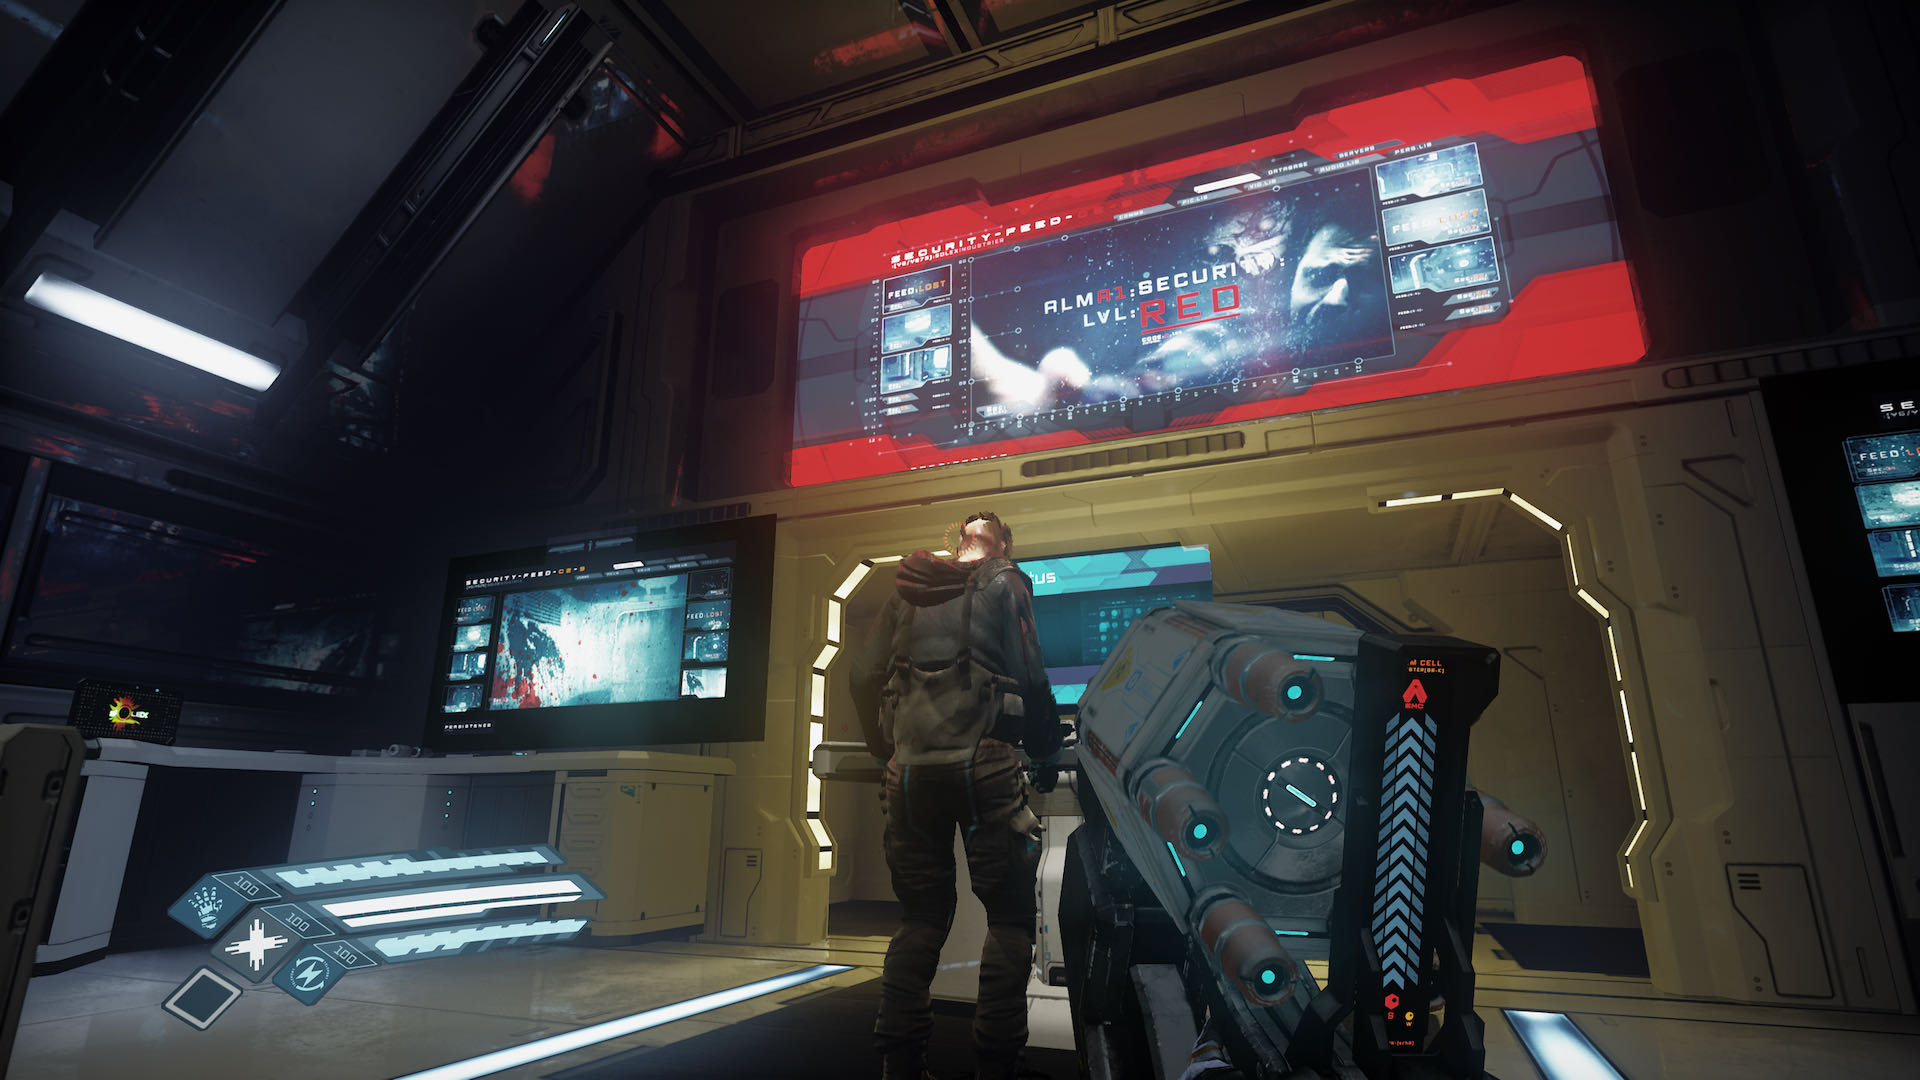 """A screenshot from The Persistence, you're looking up at two large screens showing security level """"red"""", which can't be good."""